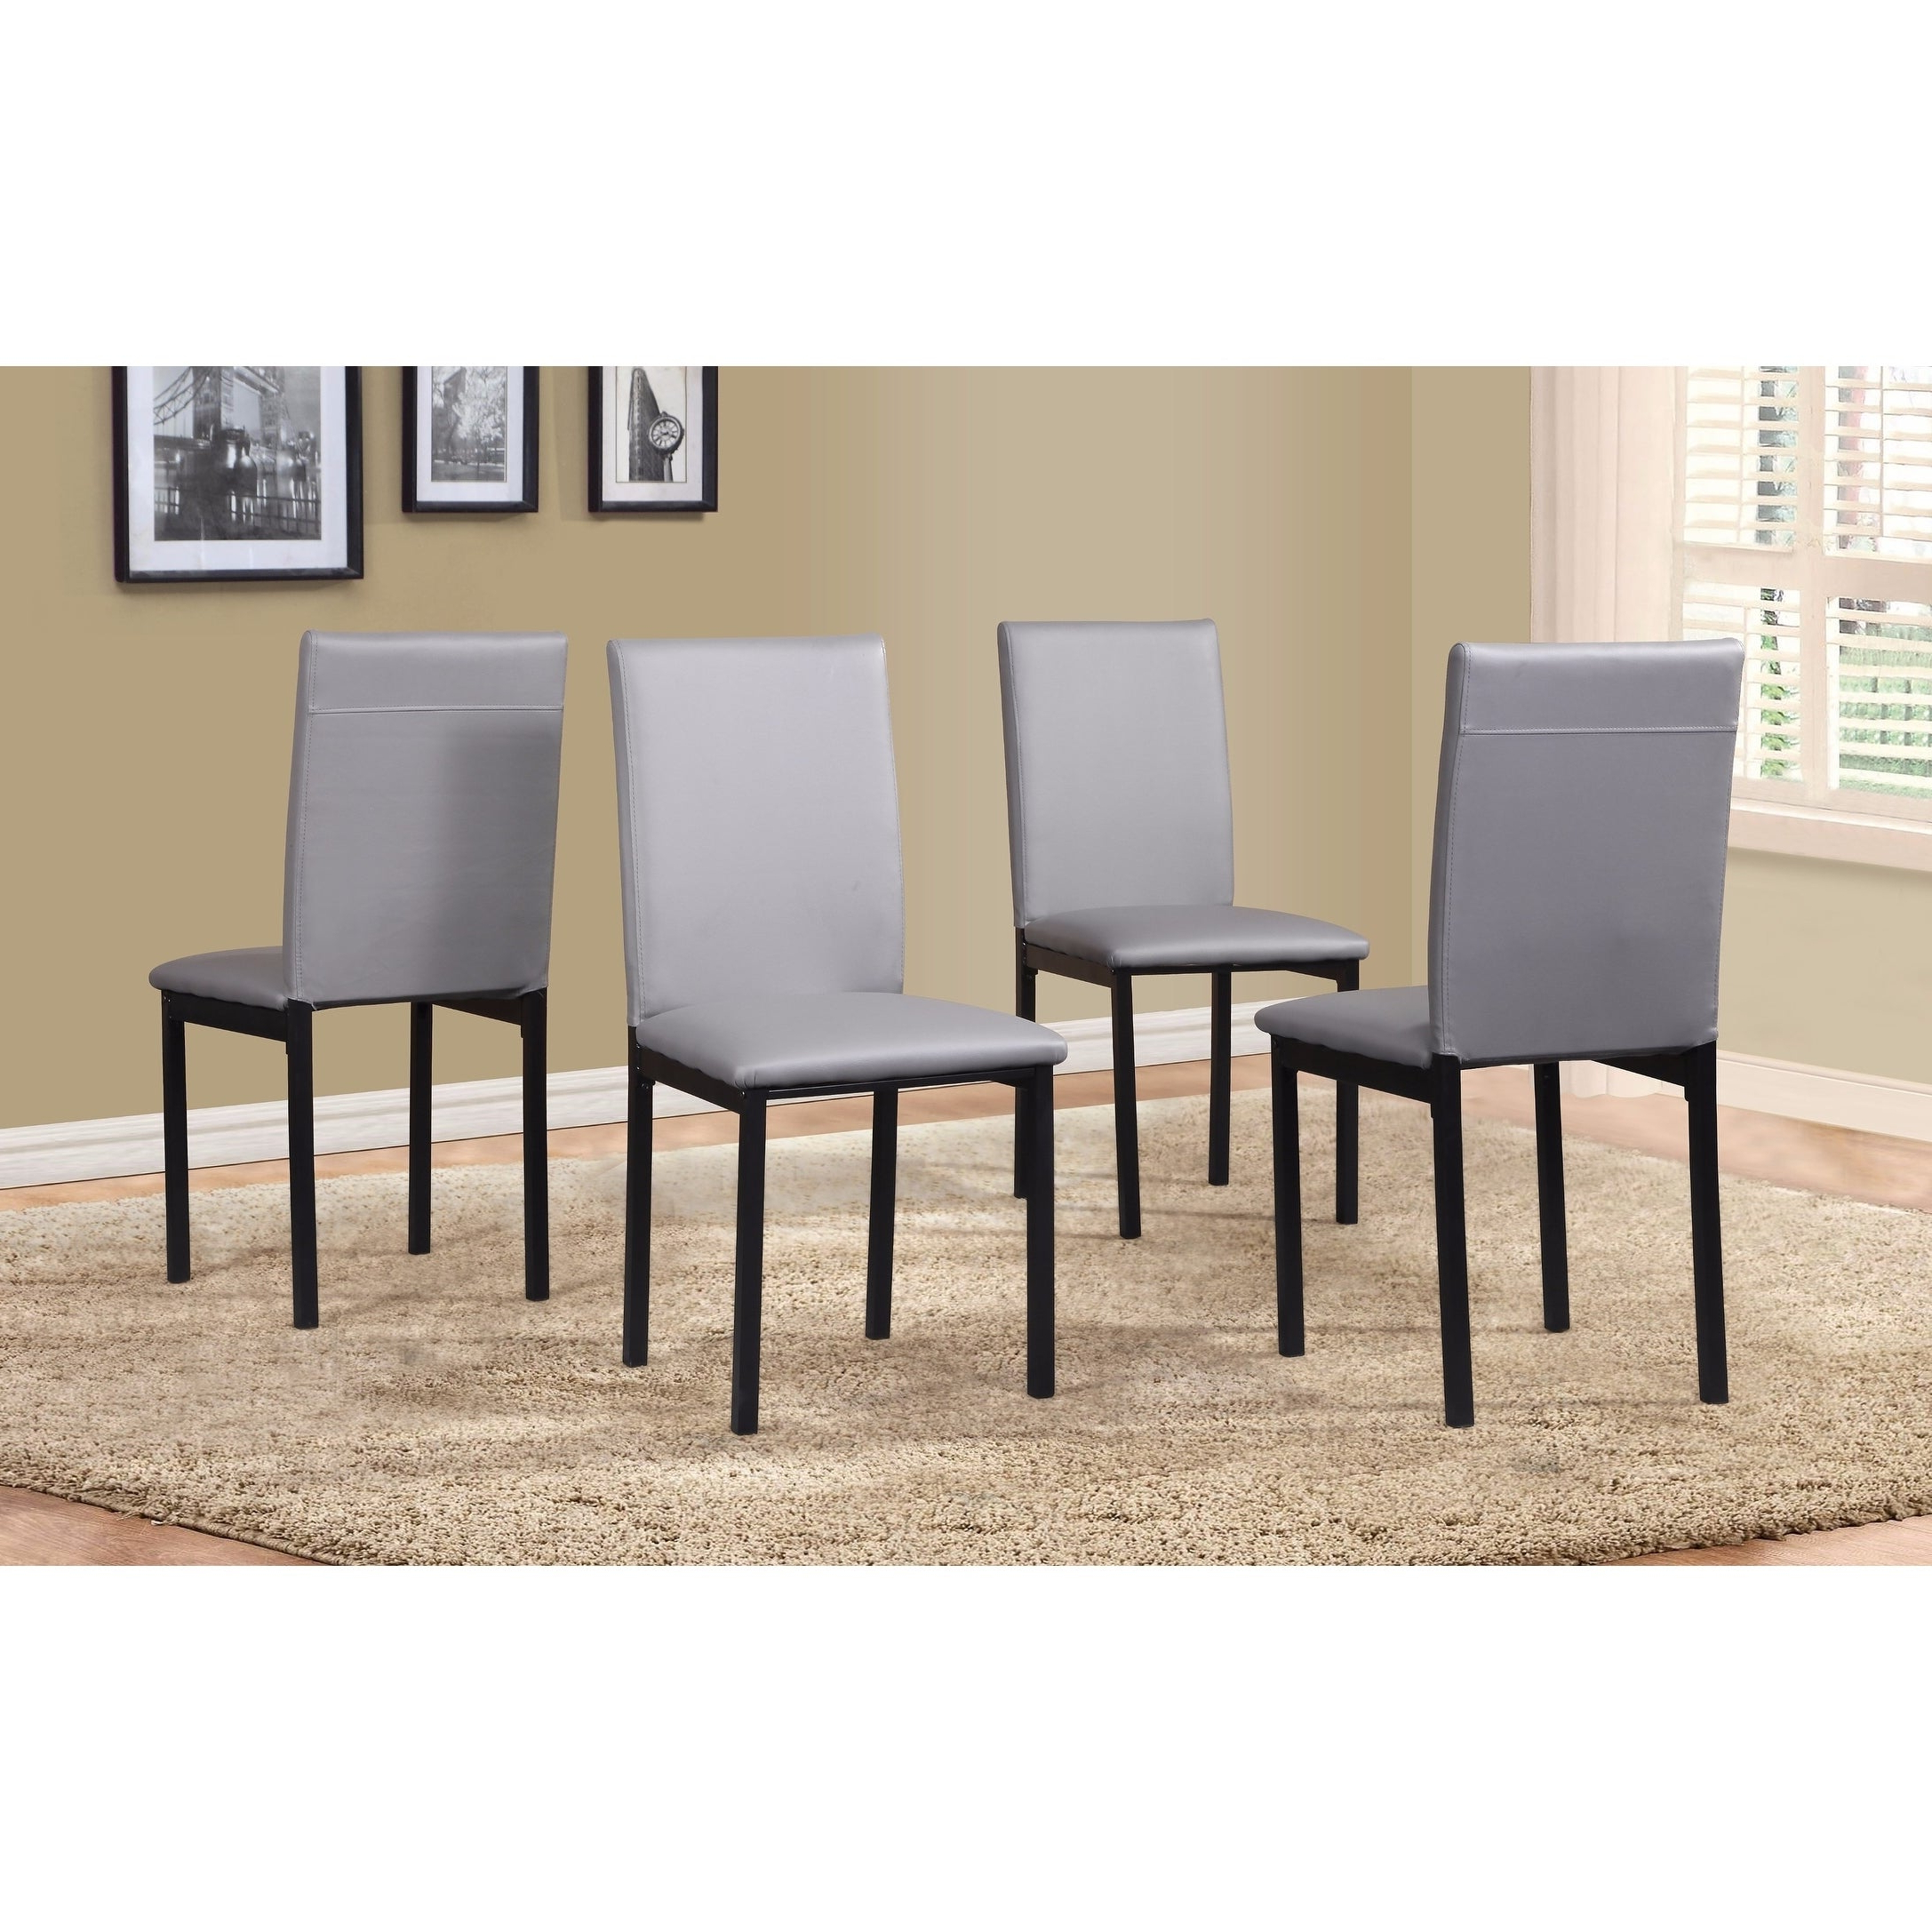 Noyes 5 Piece Dining Sets Inside 2020 Shop Noyes Faux Leather Seat Metal Frame Black Dining Chairs, Set Of (View 12 of 25)